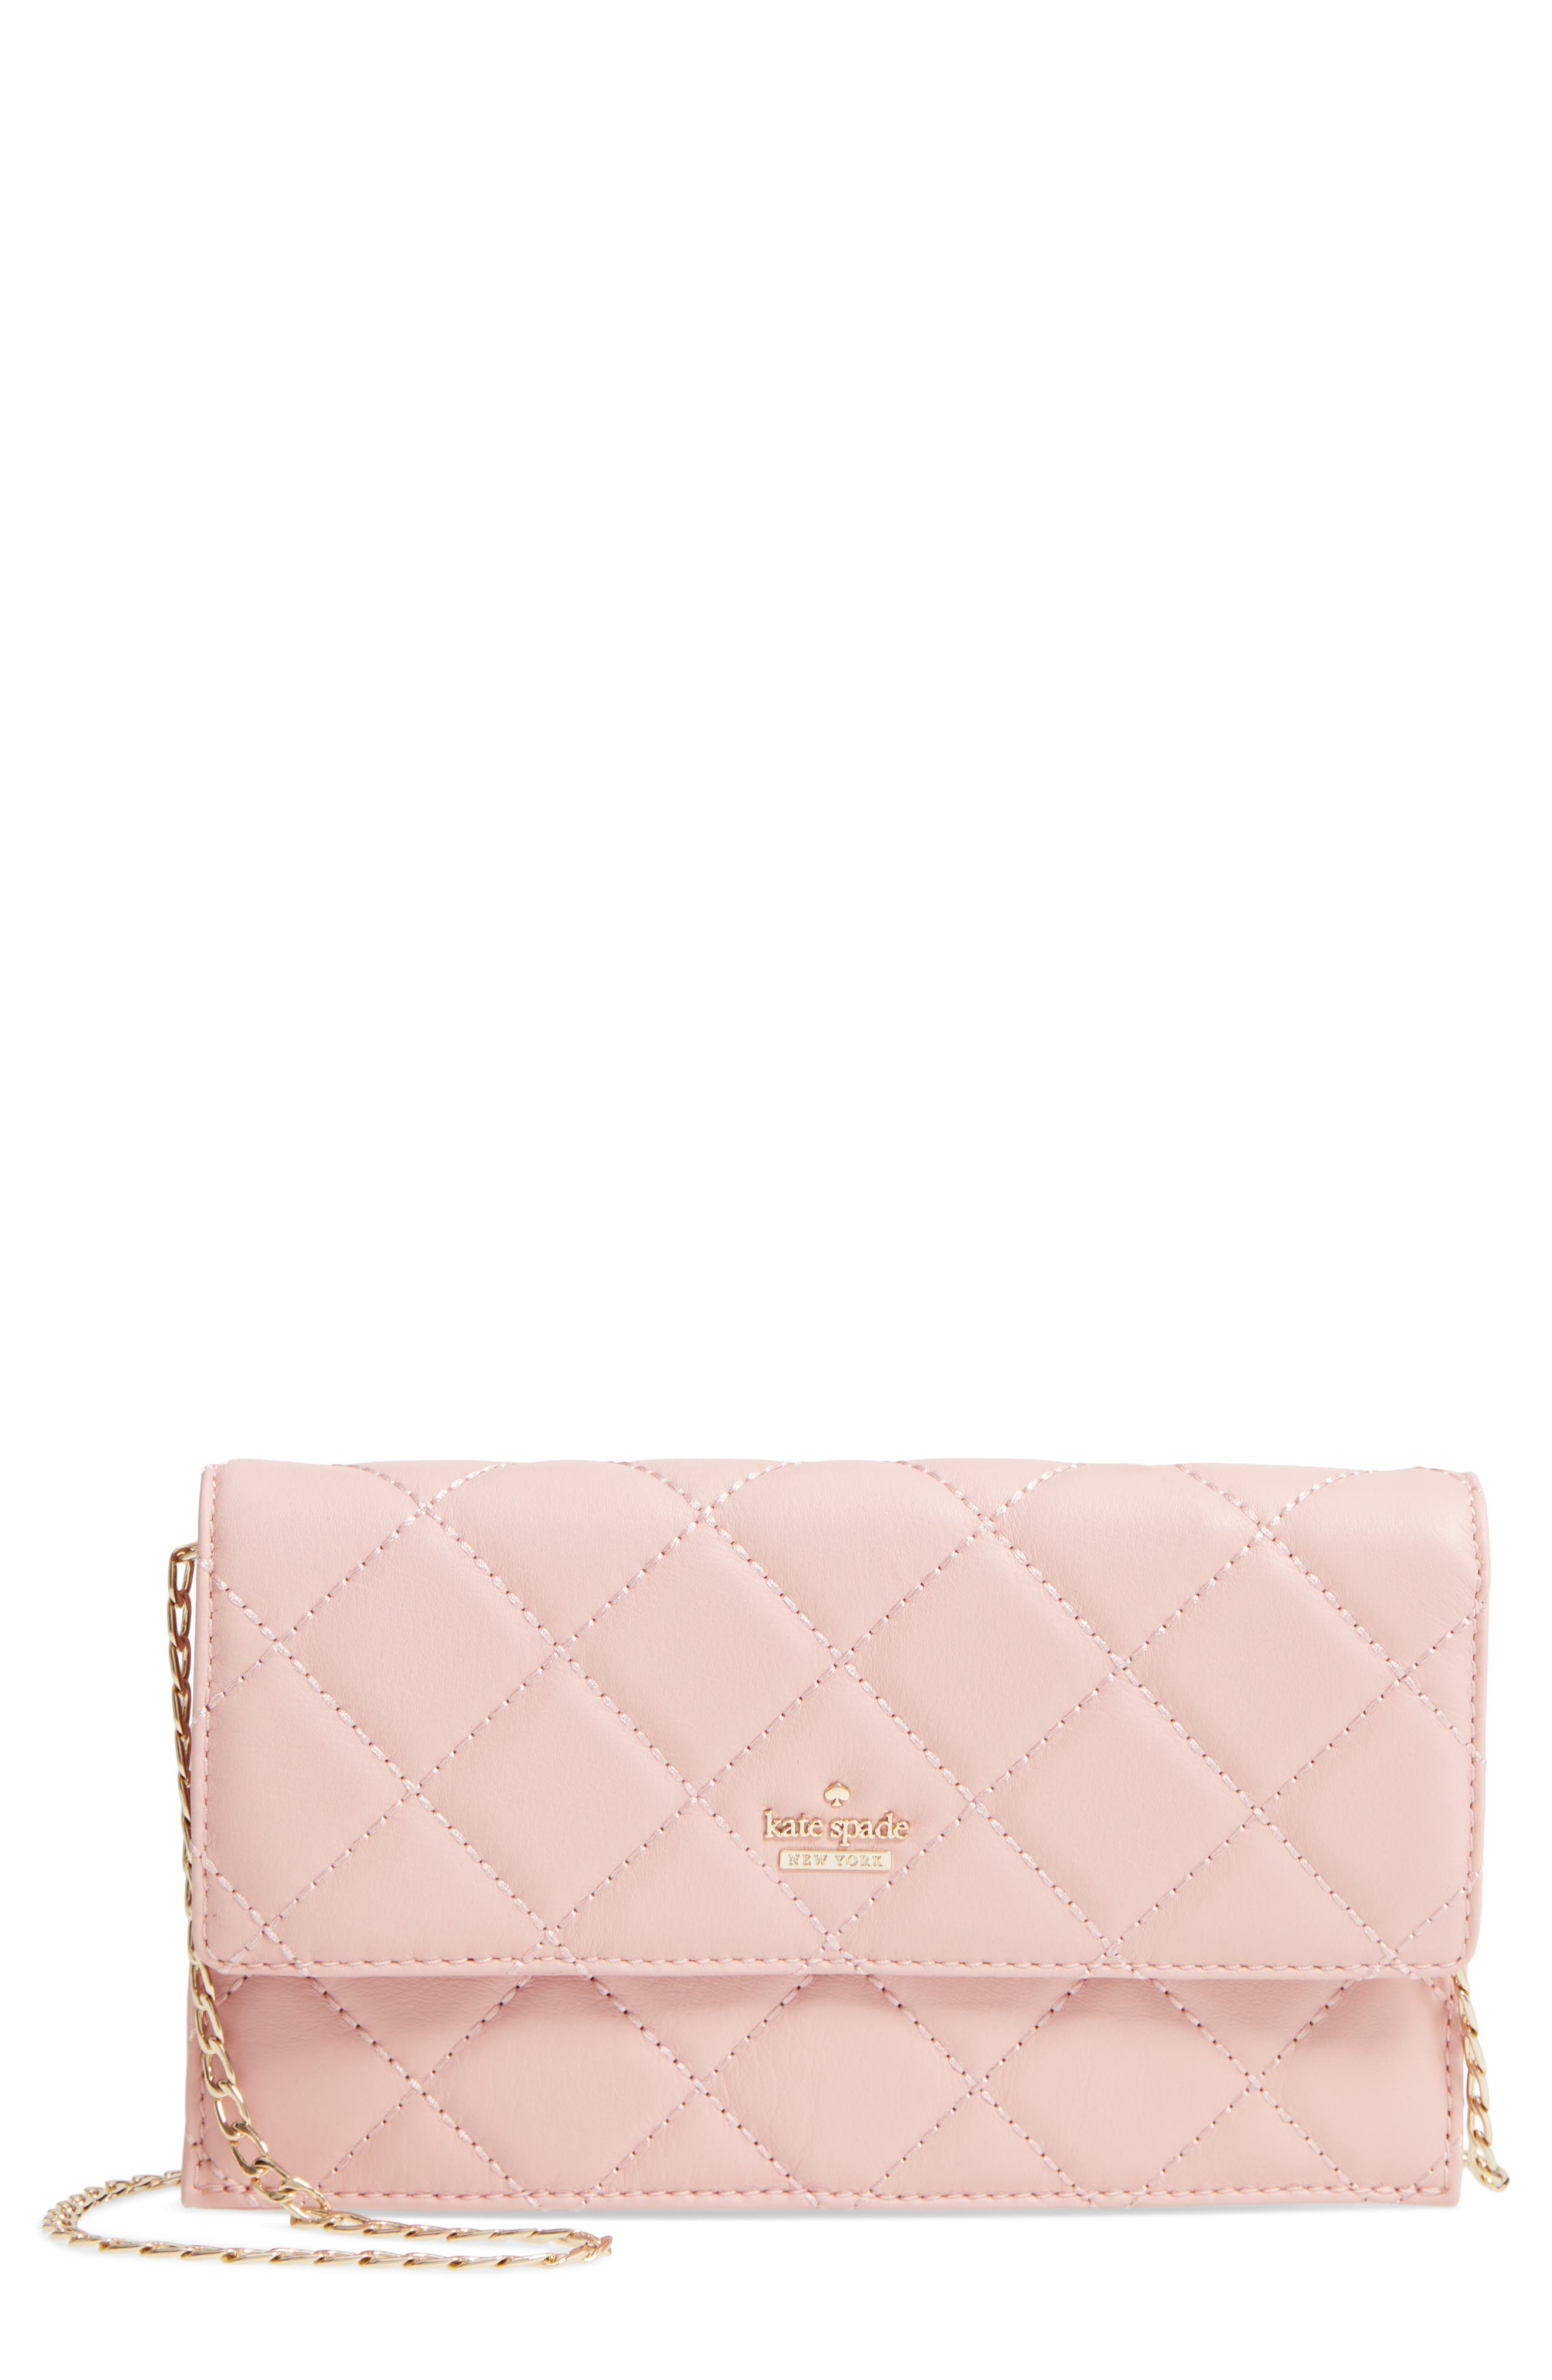 emerson place - brennan quilted leather convertible clutch & card holder,                             Main thumbnail 2, color,